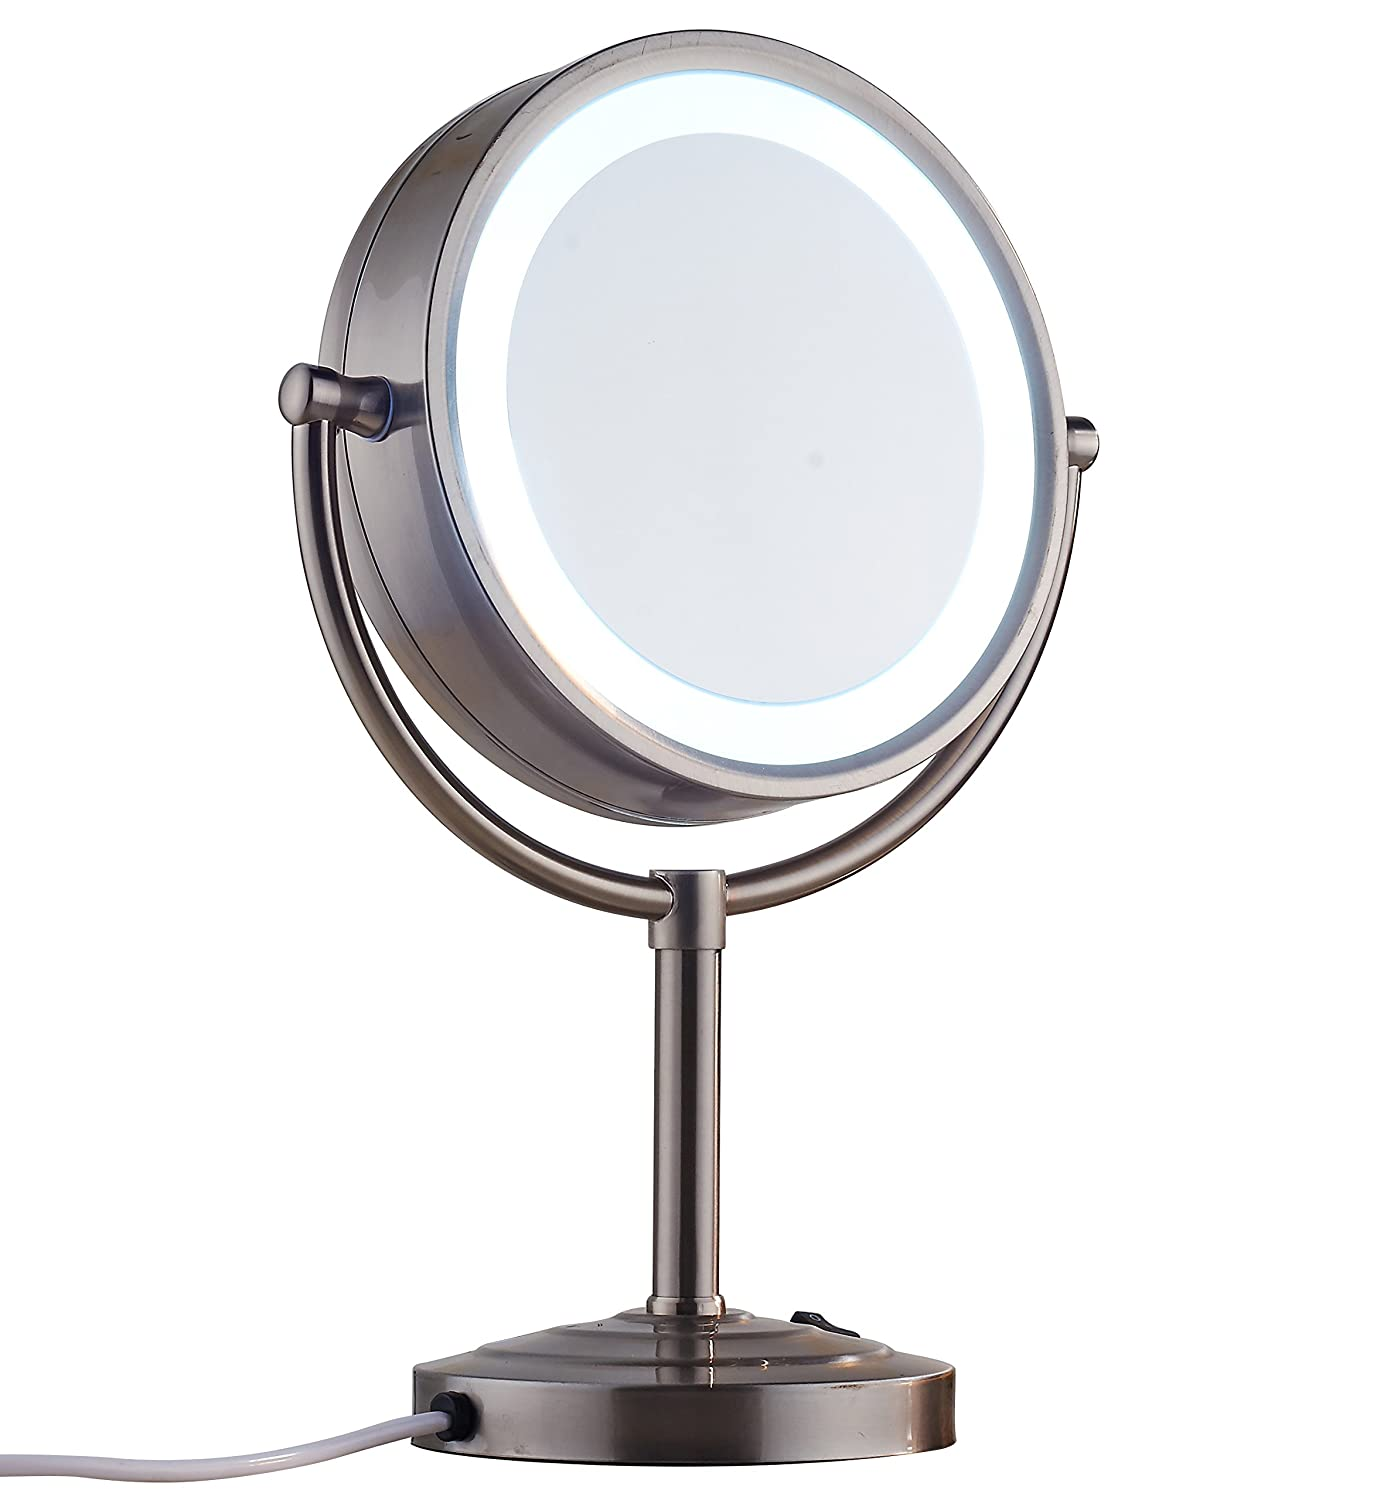 Cavoli 8.5 inch LED Makeup Mirror with 7x Magnification, Daylight Tabletop Two-sided,360 Swivel,Metal Glass, Plug Powered Nickel Finish 8.5in,7x